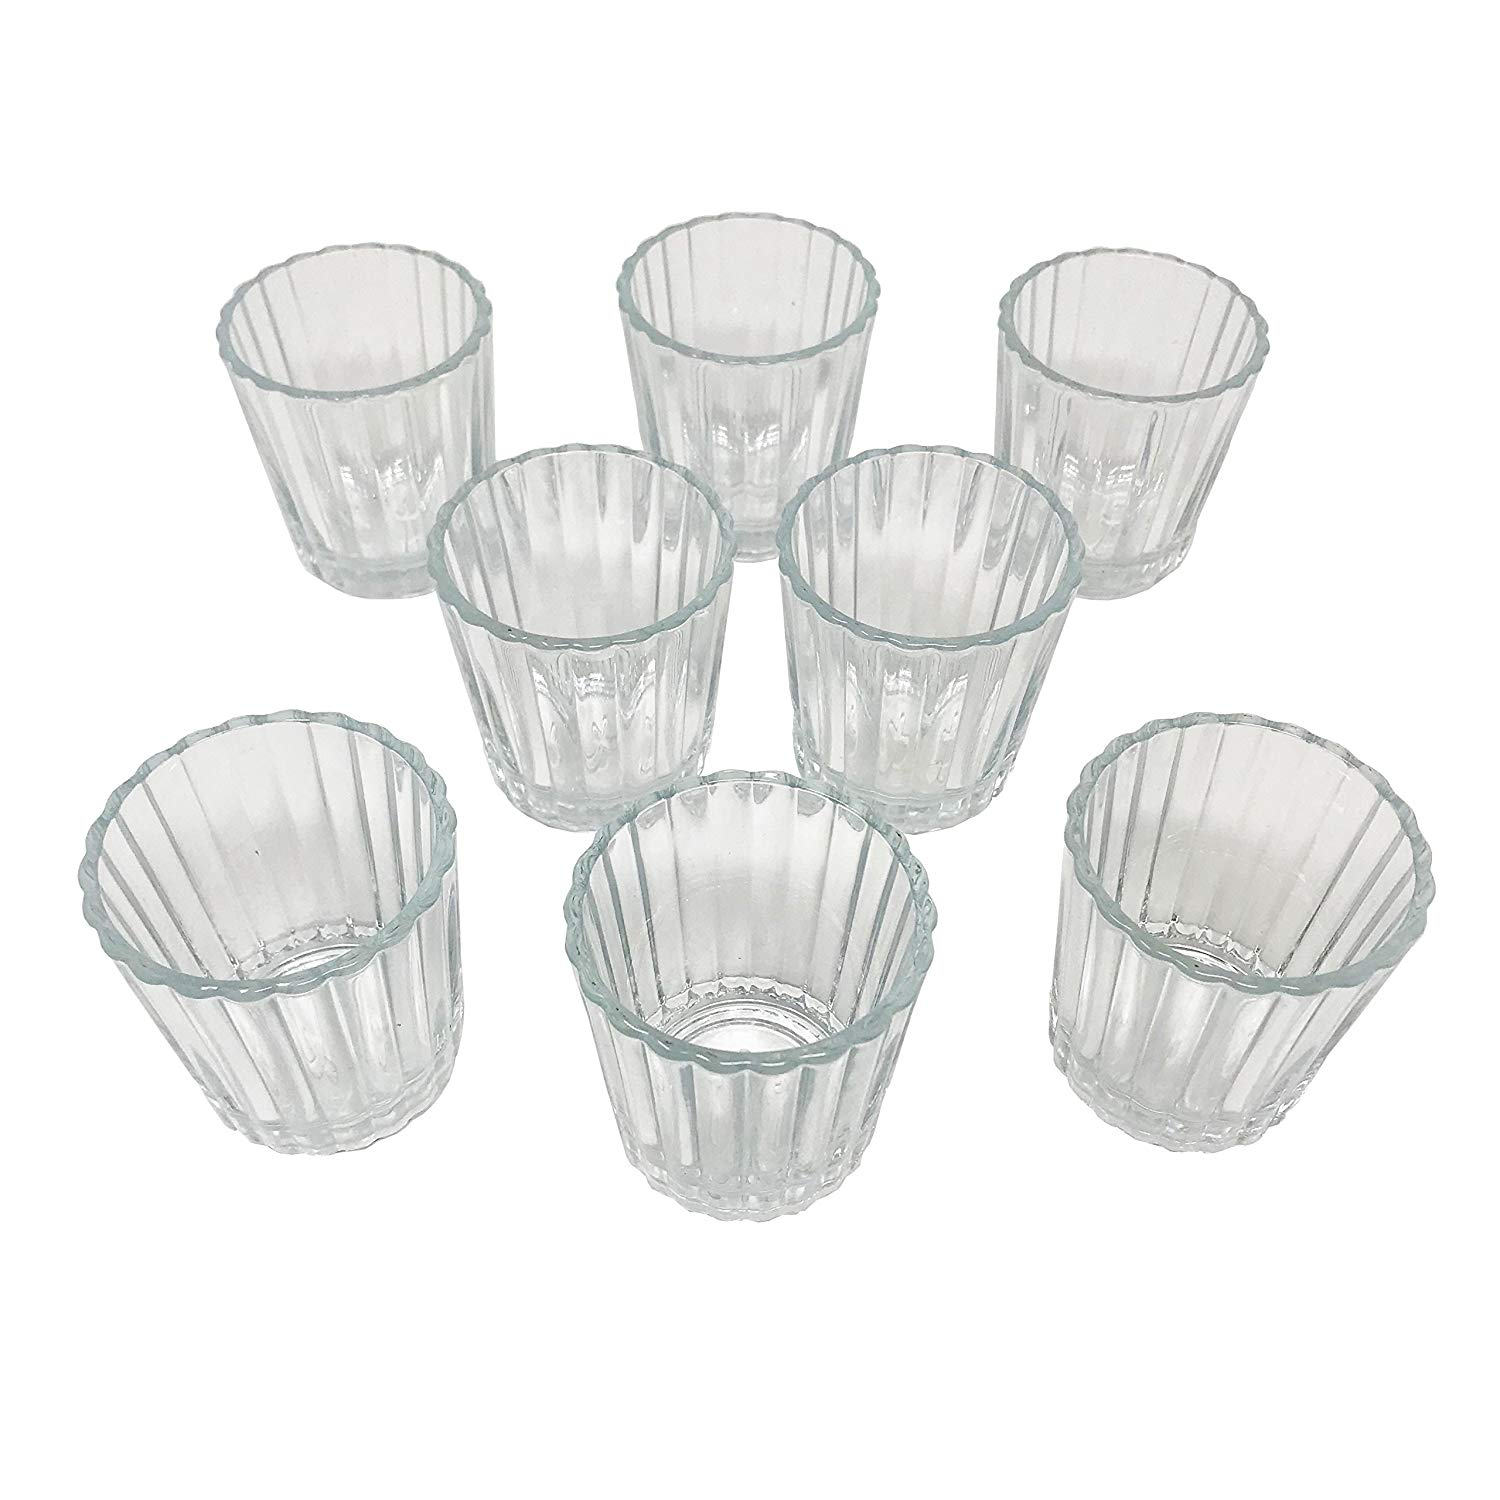 Set of 8 Mezcal Glasses, Vaso Veladora para Mezcal. Traditional Glass for Mexican Drinks With a Wide Mouth in Order to get the Aroma. It Also Serves as a Tequila Shot Glass.